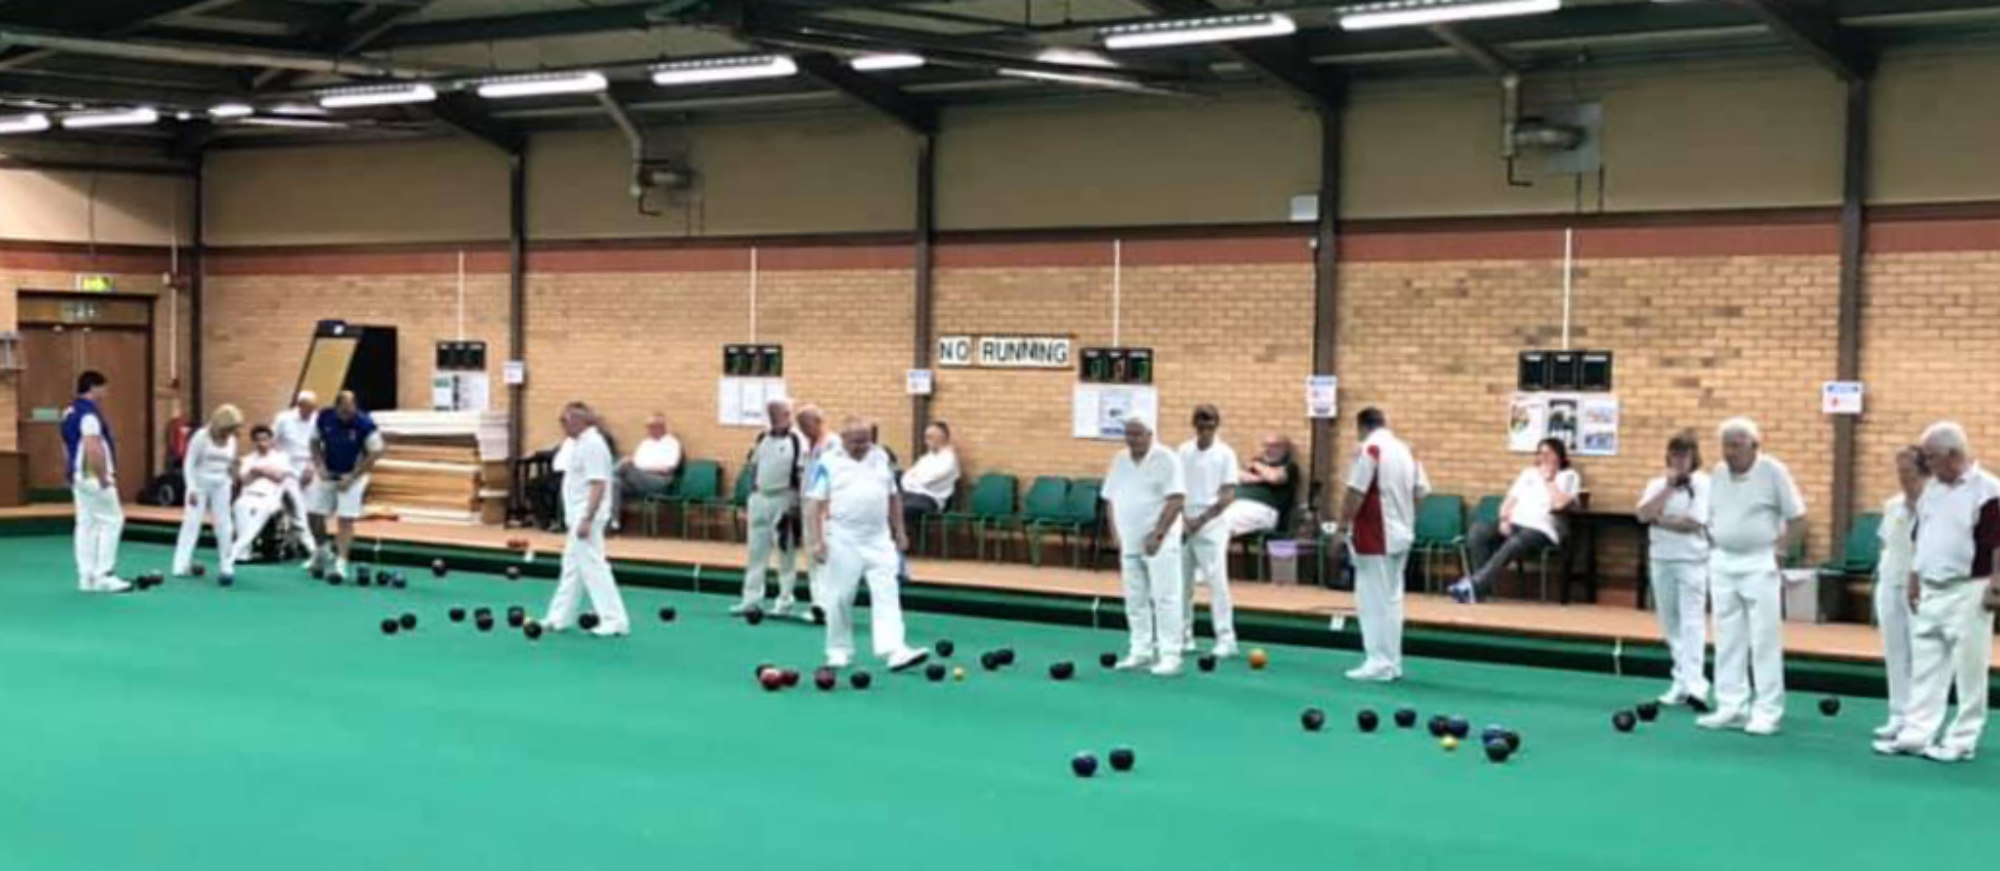 Radnorshire Indoor Bowls Association website